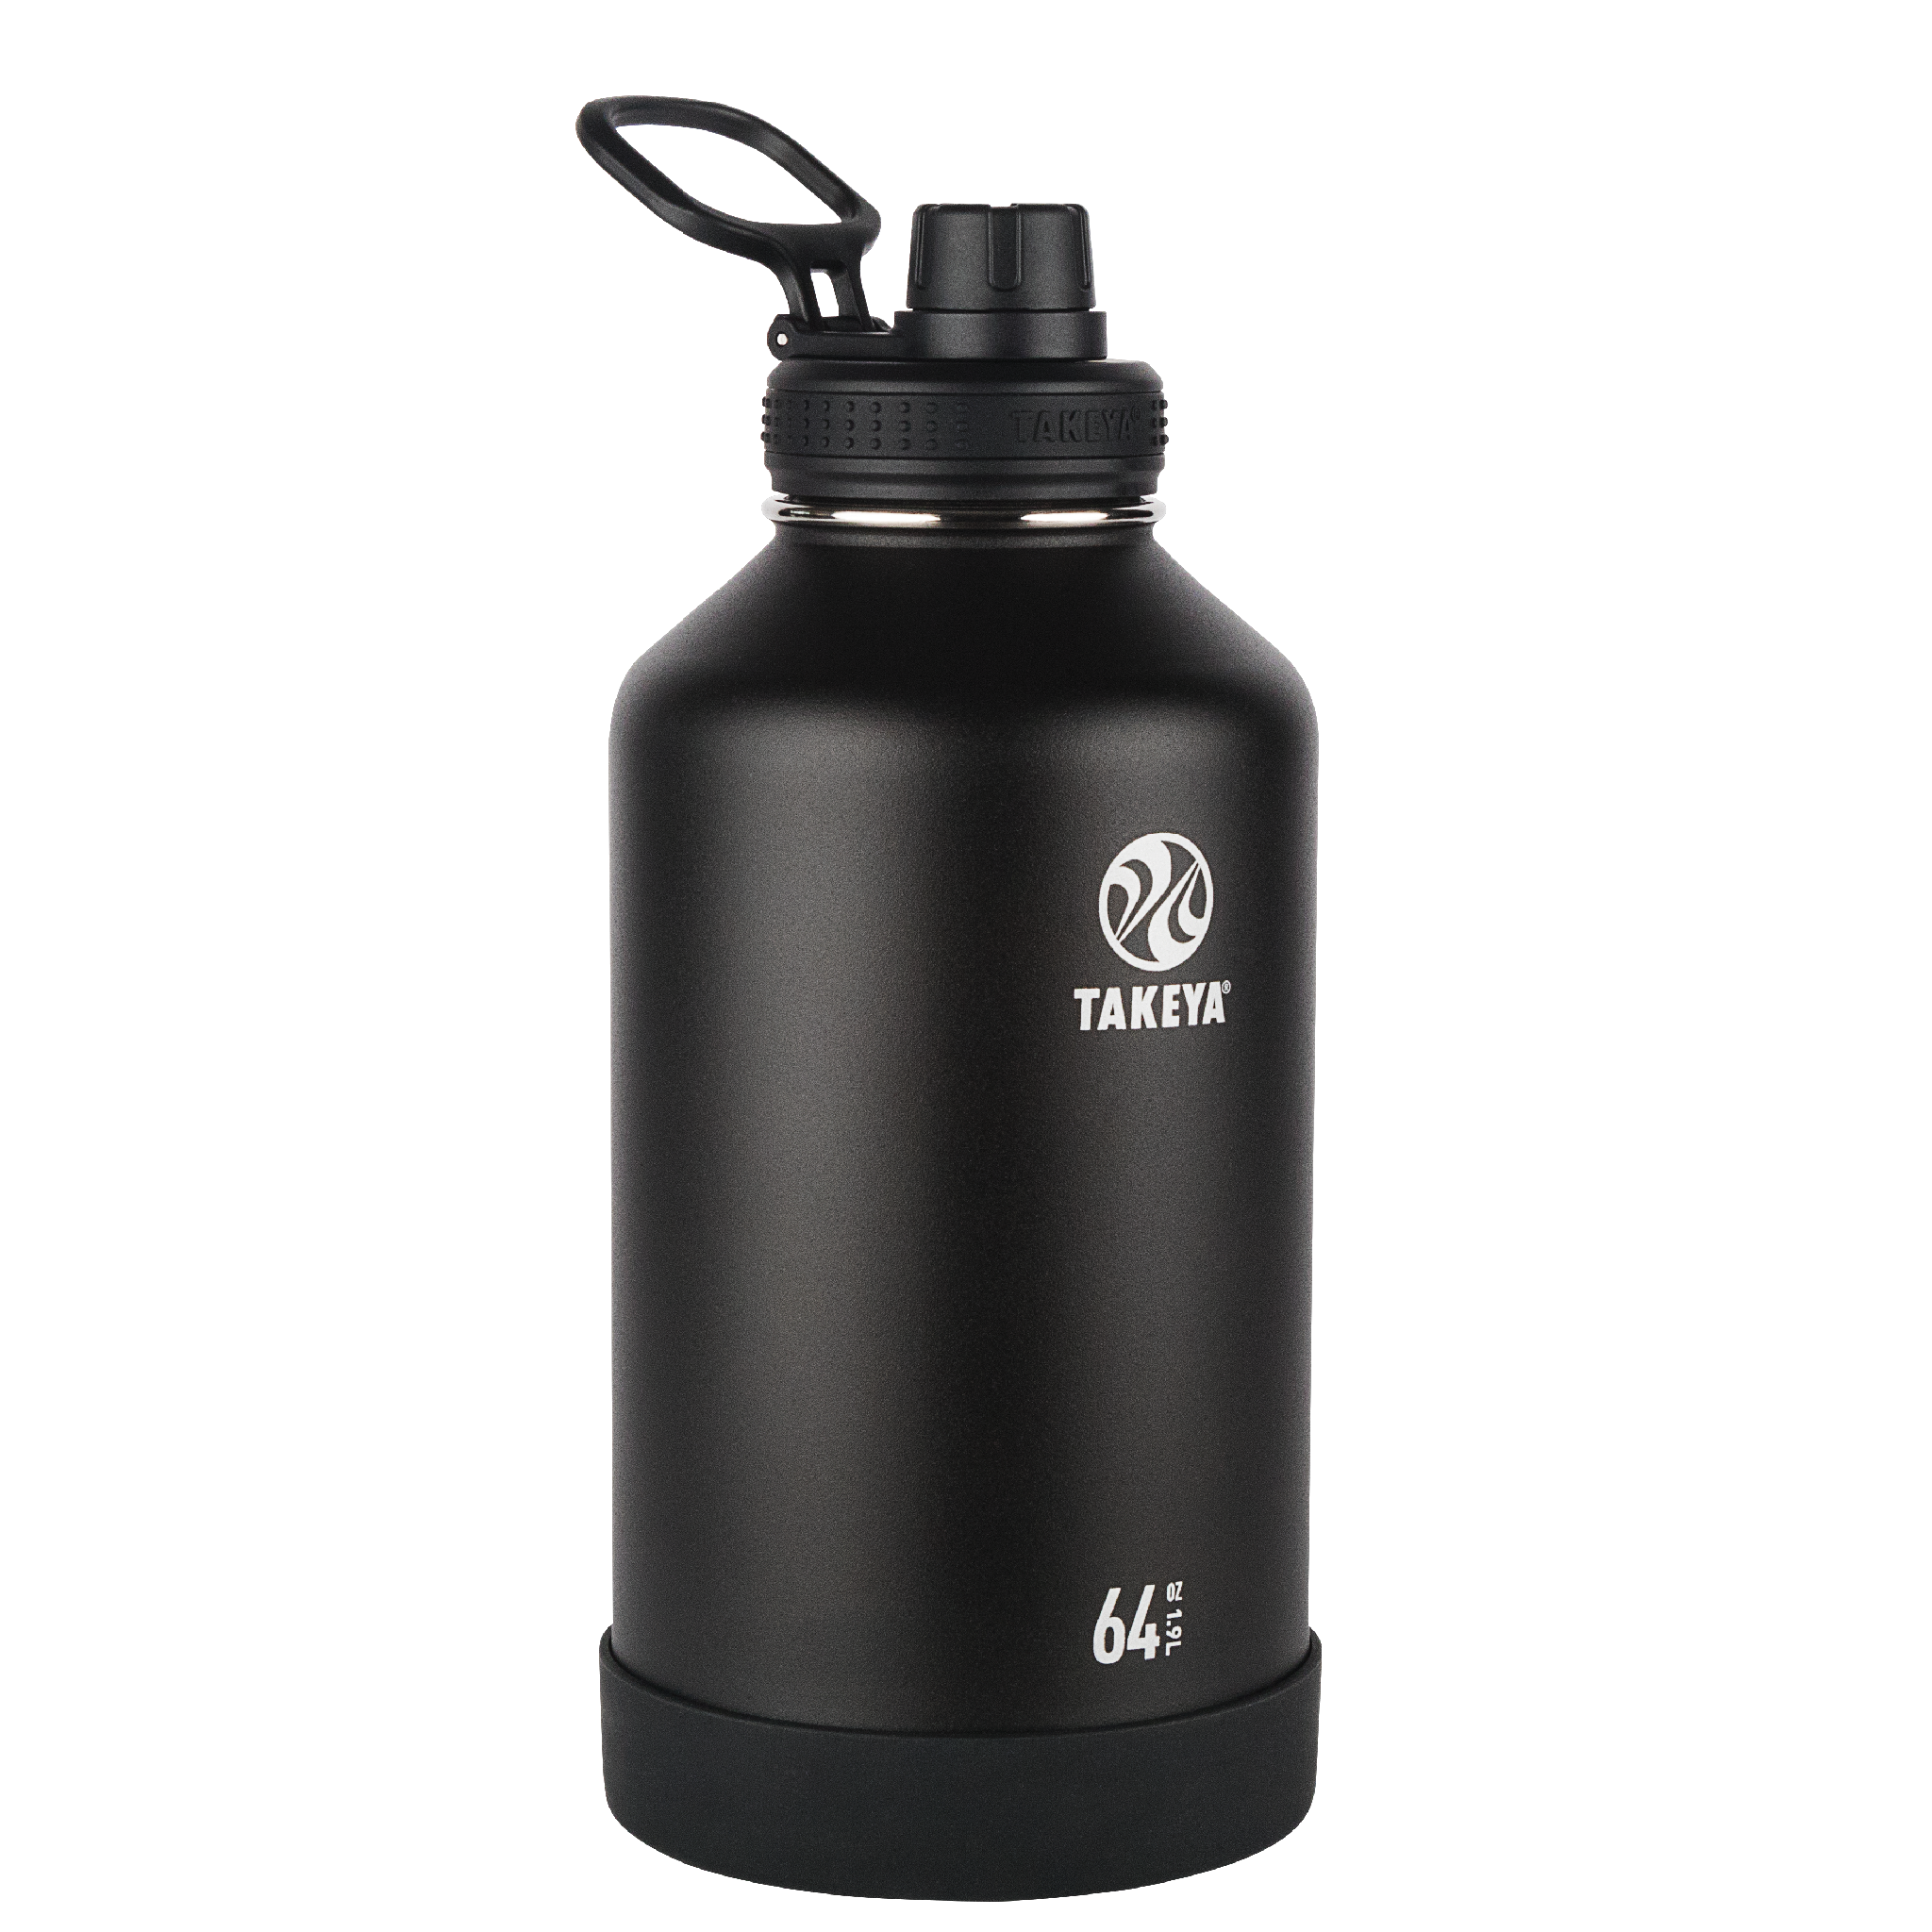 Takeya Actives Stainless Steel Water Bottle w/Spout lid, 64oz Onyx